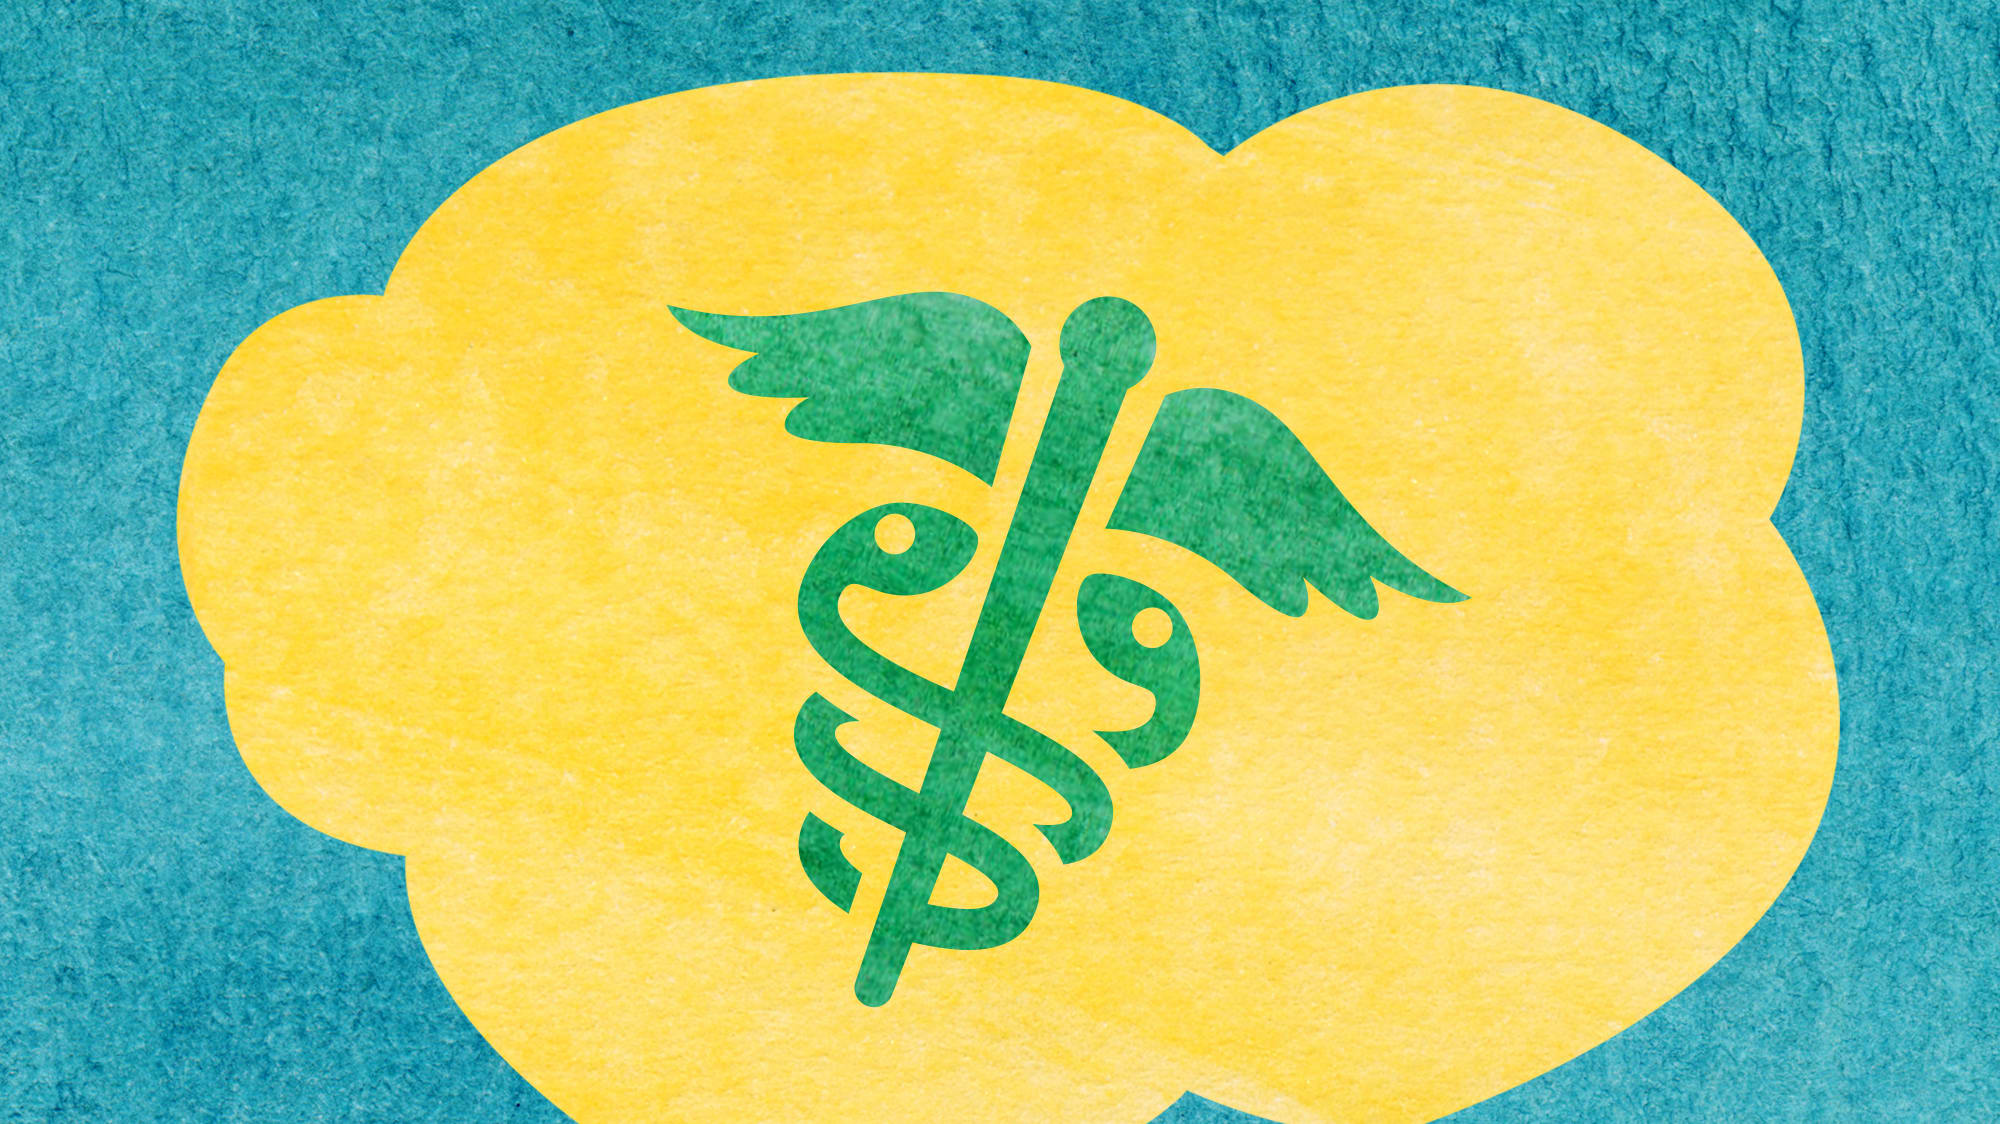 watercolor illustration of a yellow speech bubble with caduceus inside against a teal background